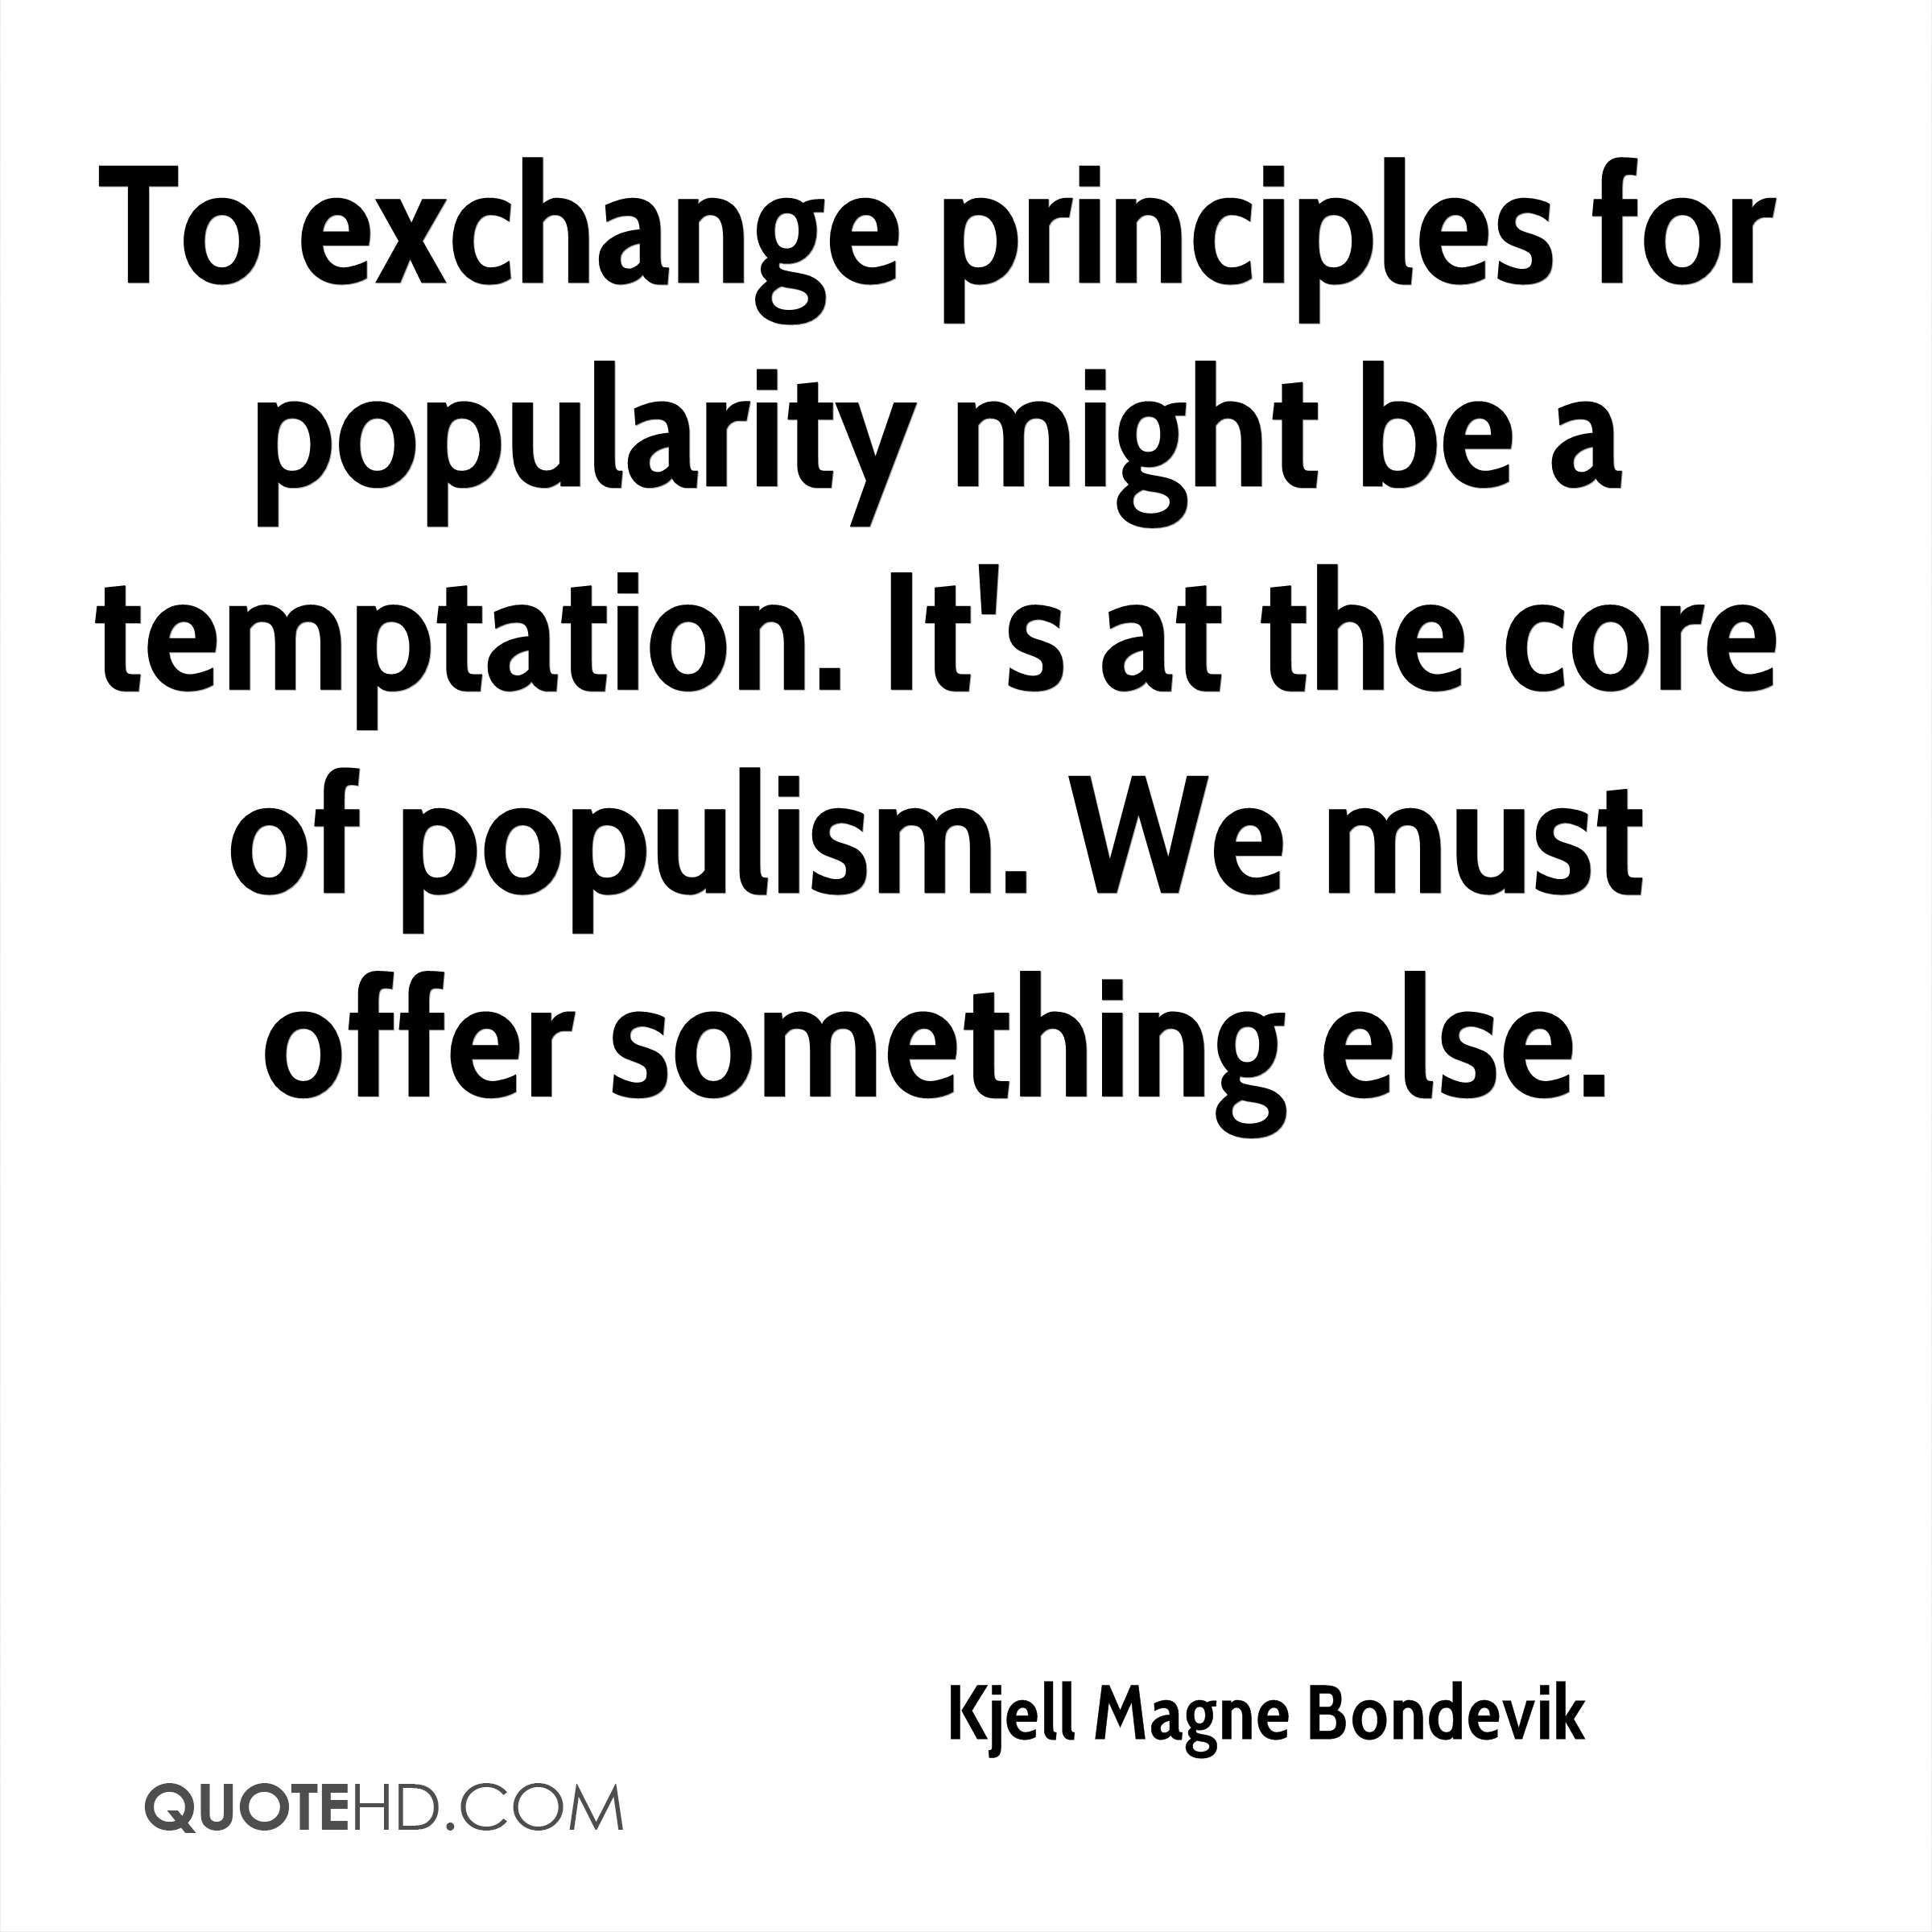 To exchange principles for popularity might be a temptation. It's at the core of populism. We must offer something else.